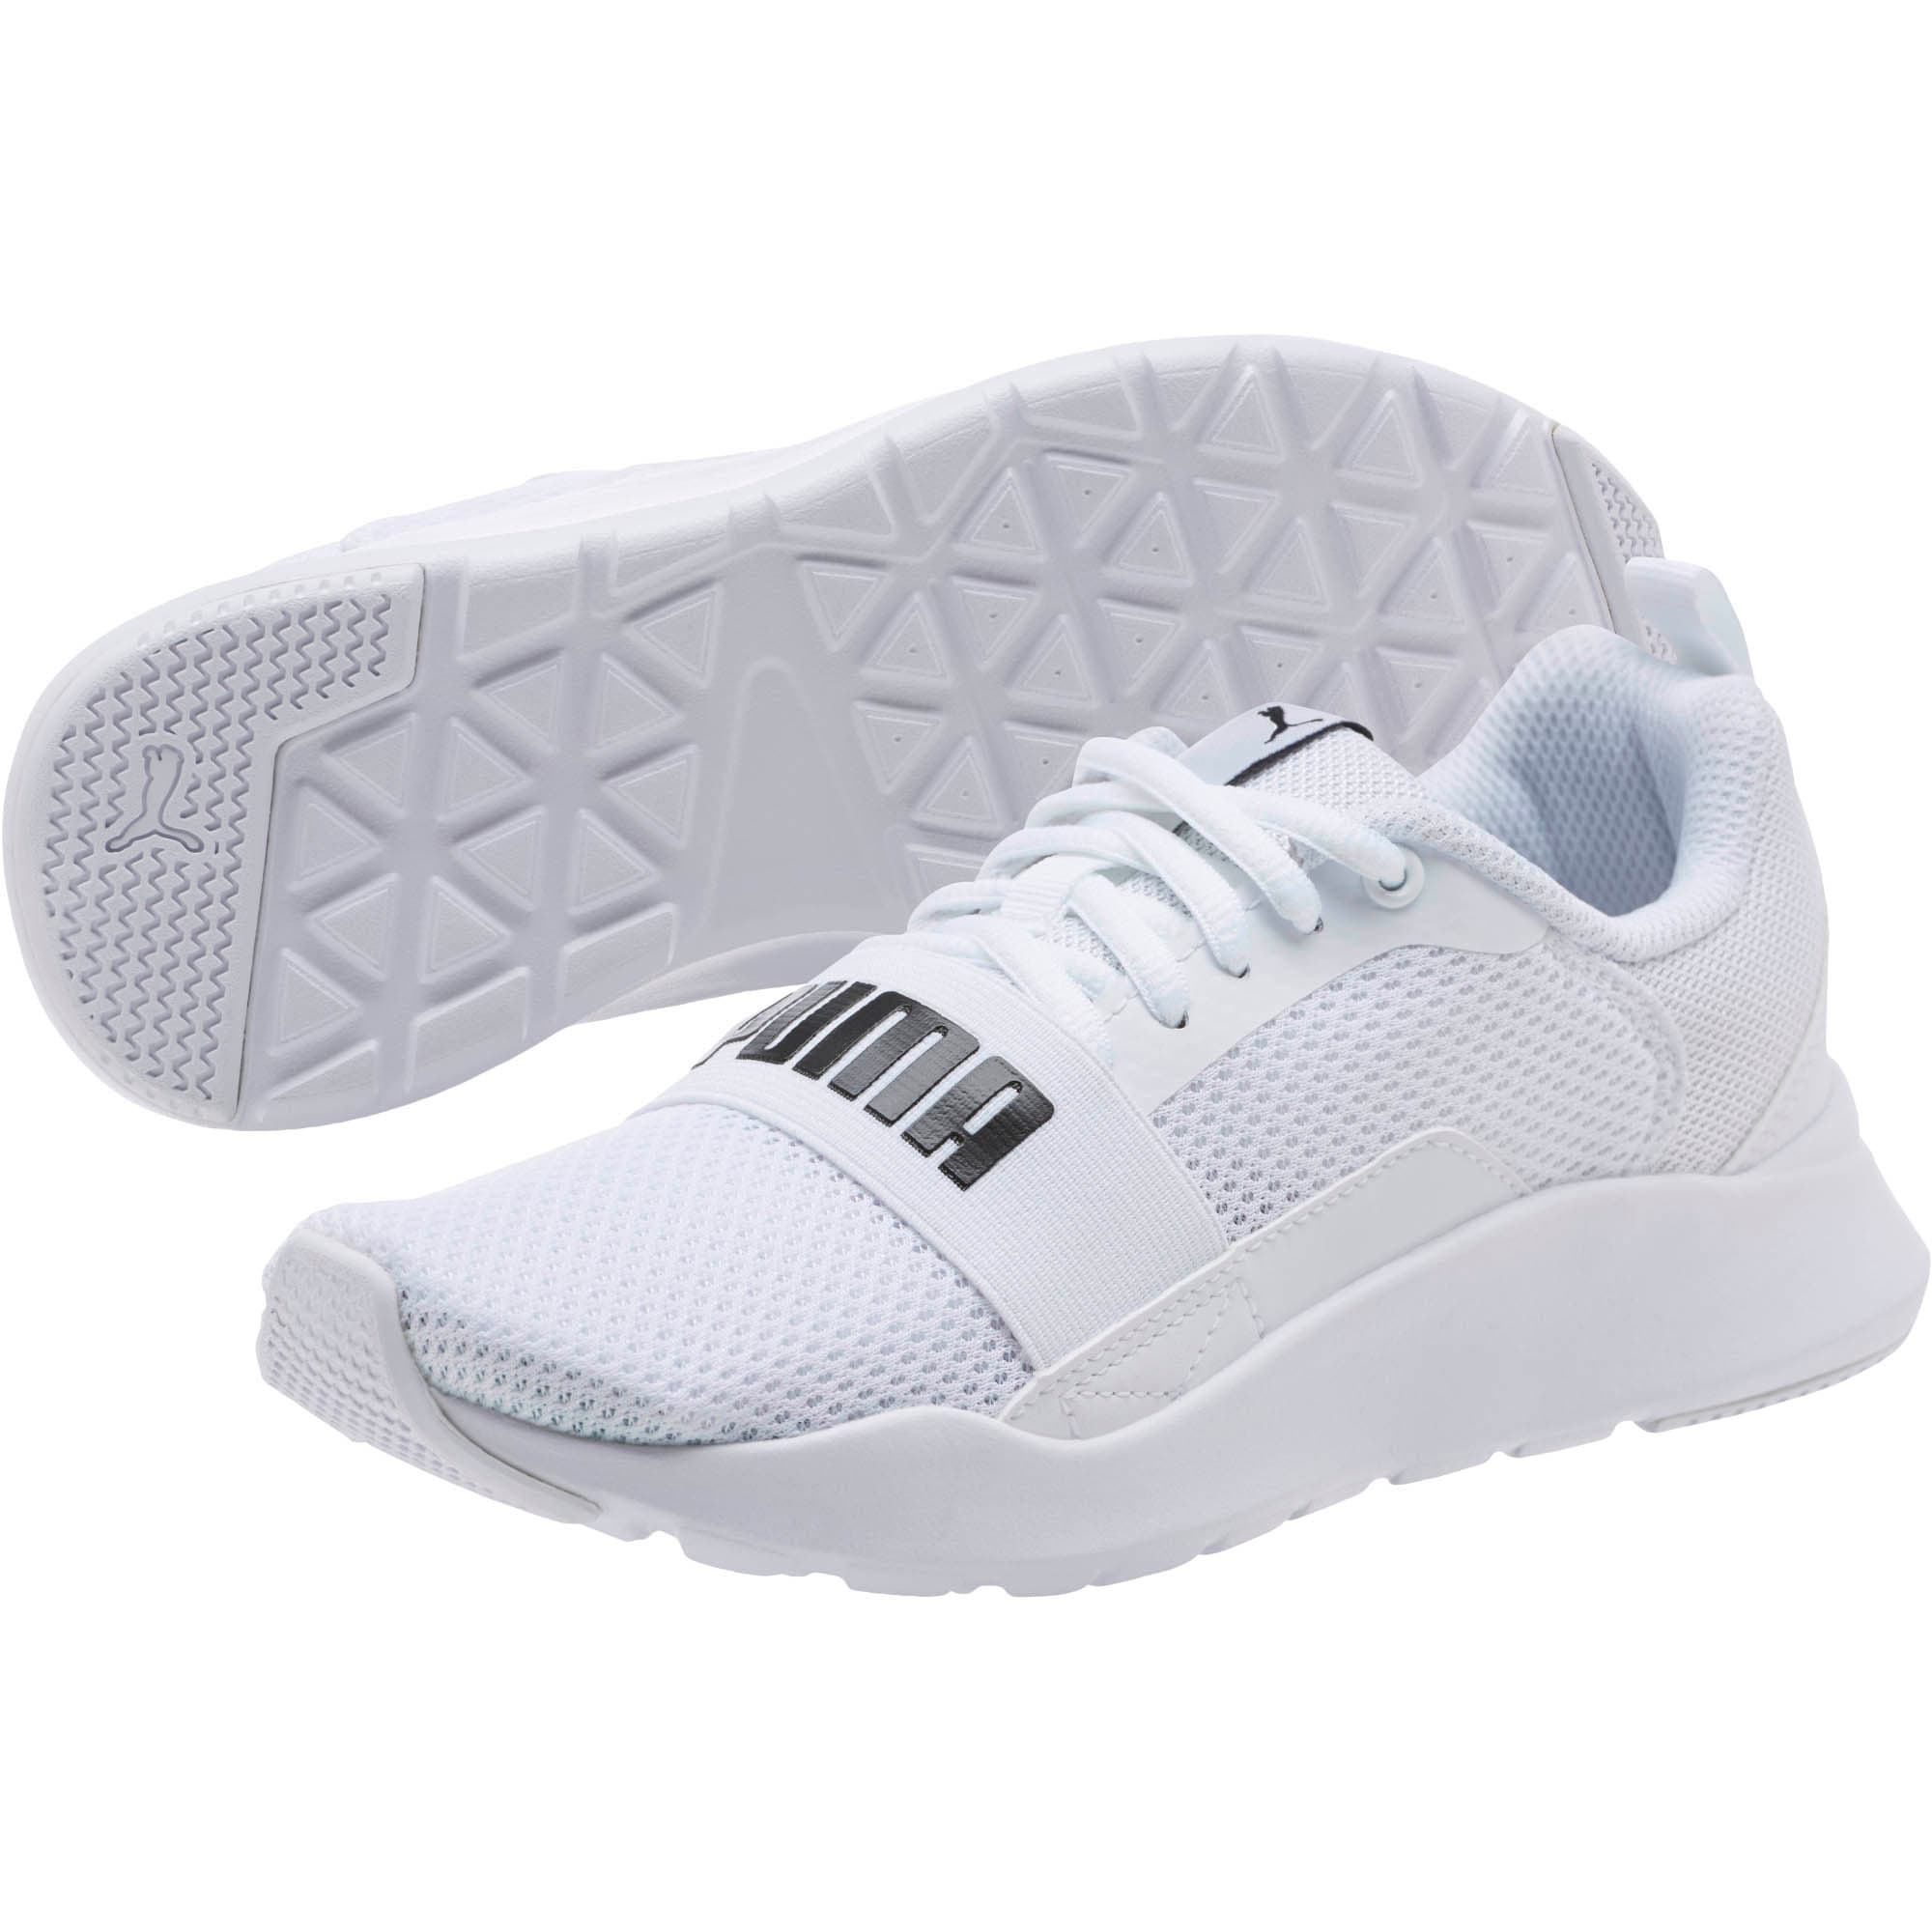 Thumbnail 2 of PUMA Wired Sneakers JR, Puma White-Puma White-White, medium